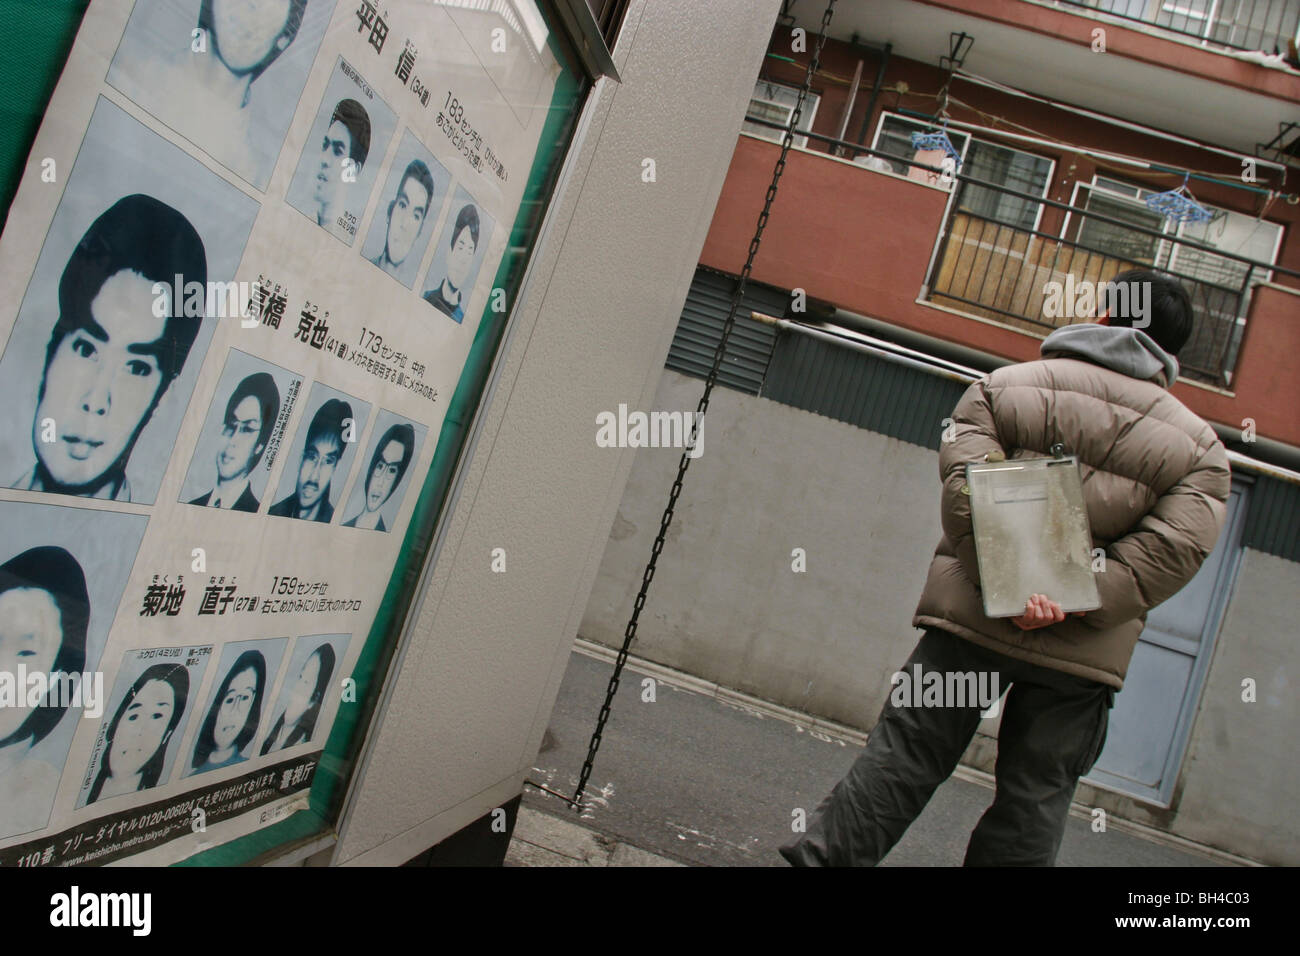 Police monitoring the activities of cult members outside buildings occupied by Aum Shinrikyo Supreme Truth Cult, - Stock Image